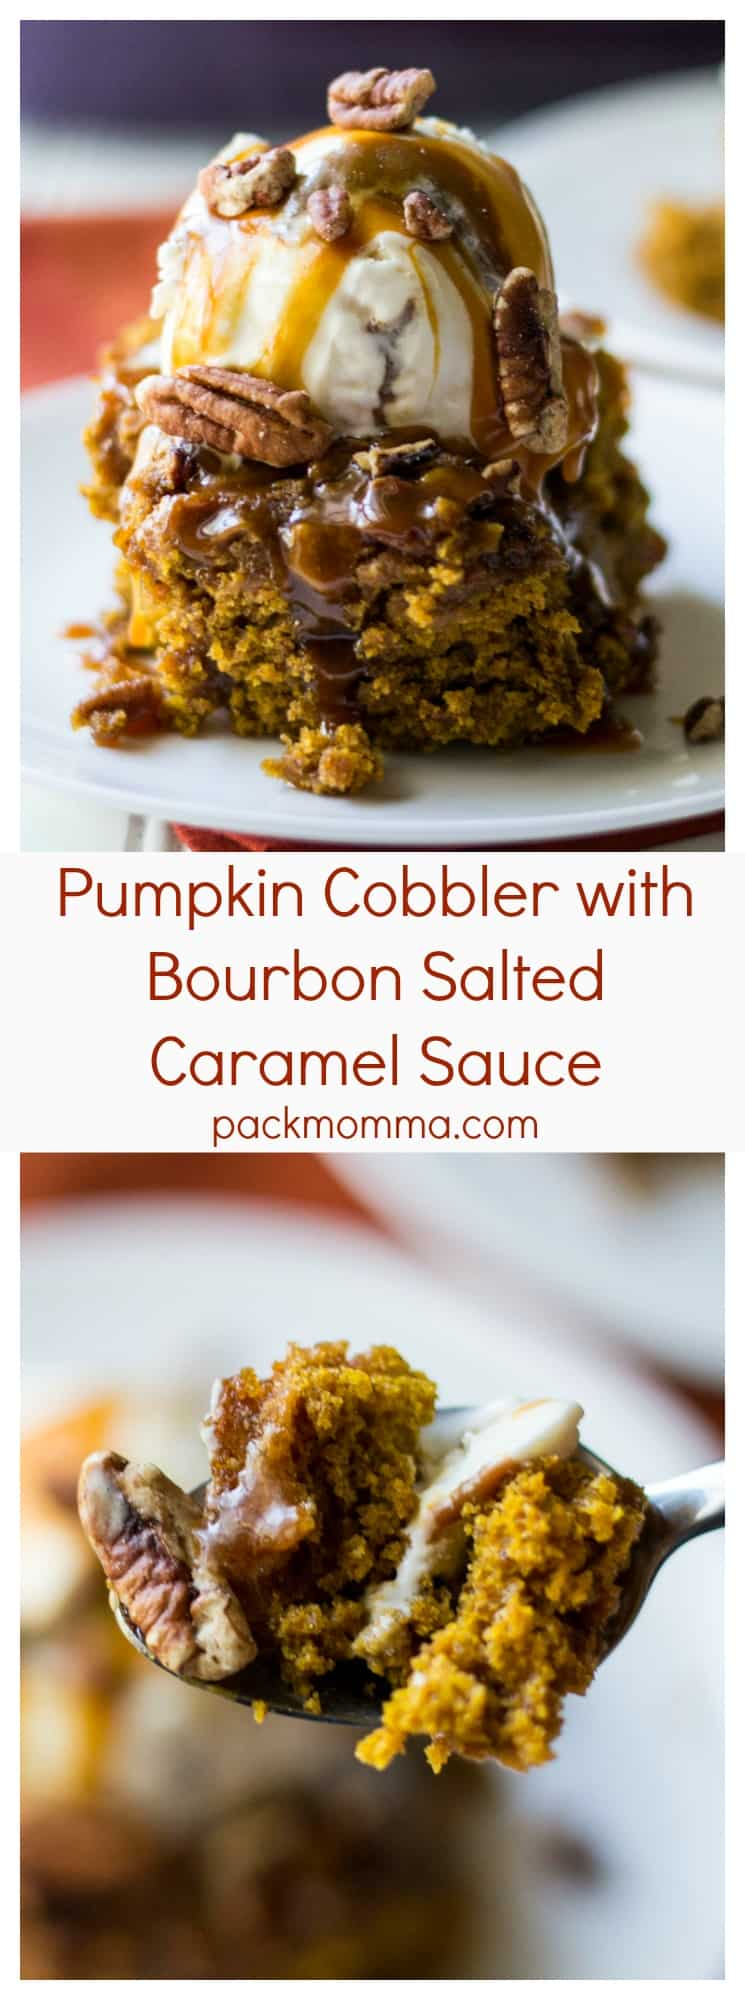 Pumpkin Cobbler with Bourbon Salted Caramel Sauce   Pumpkin Cobbler with Bourbon Salted Caramel Sauce is the perfect fall inspired dessert. Soft, warm and pumpkin spiced with all the fall flavors you crave.   Pack Momma   https://www.packmomma.com